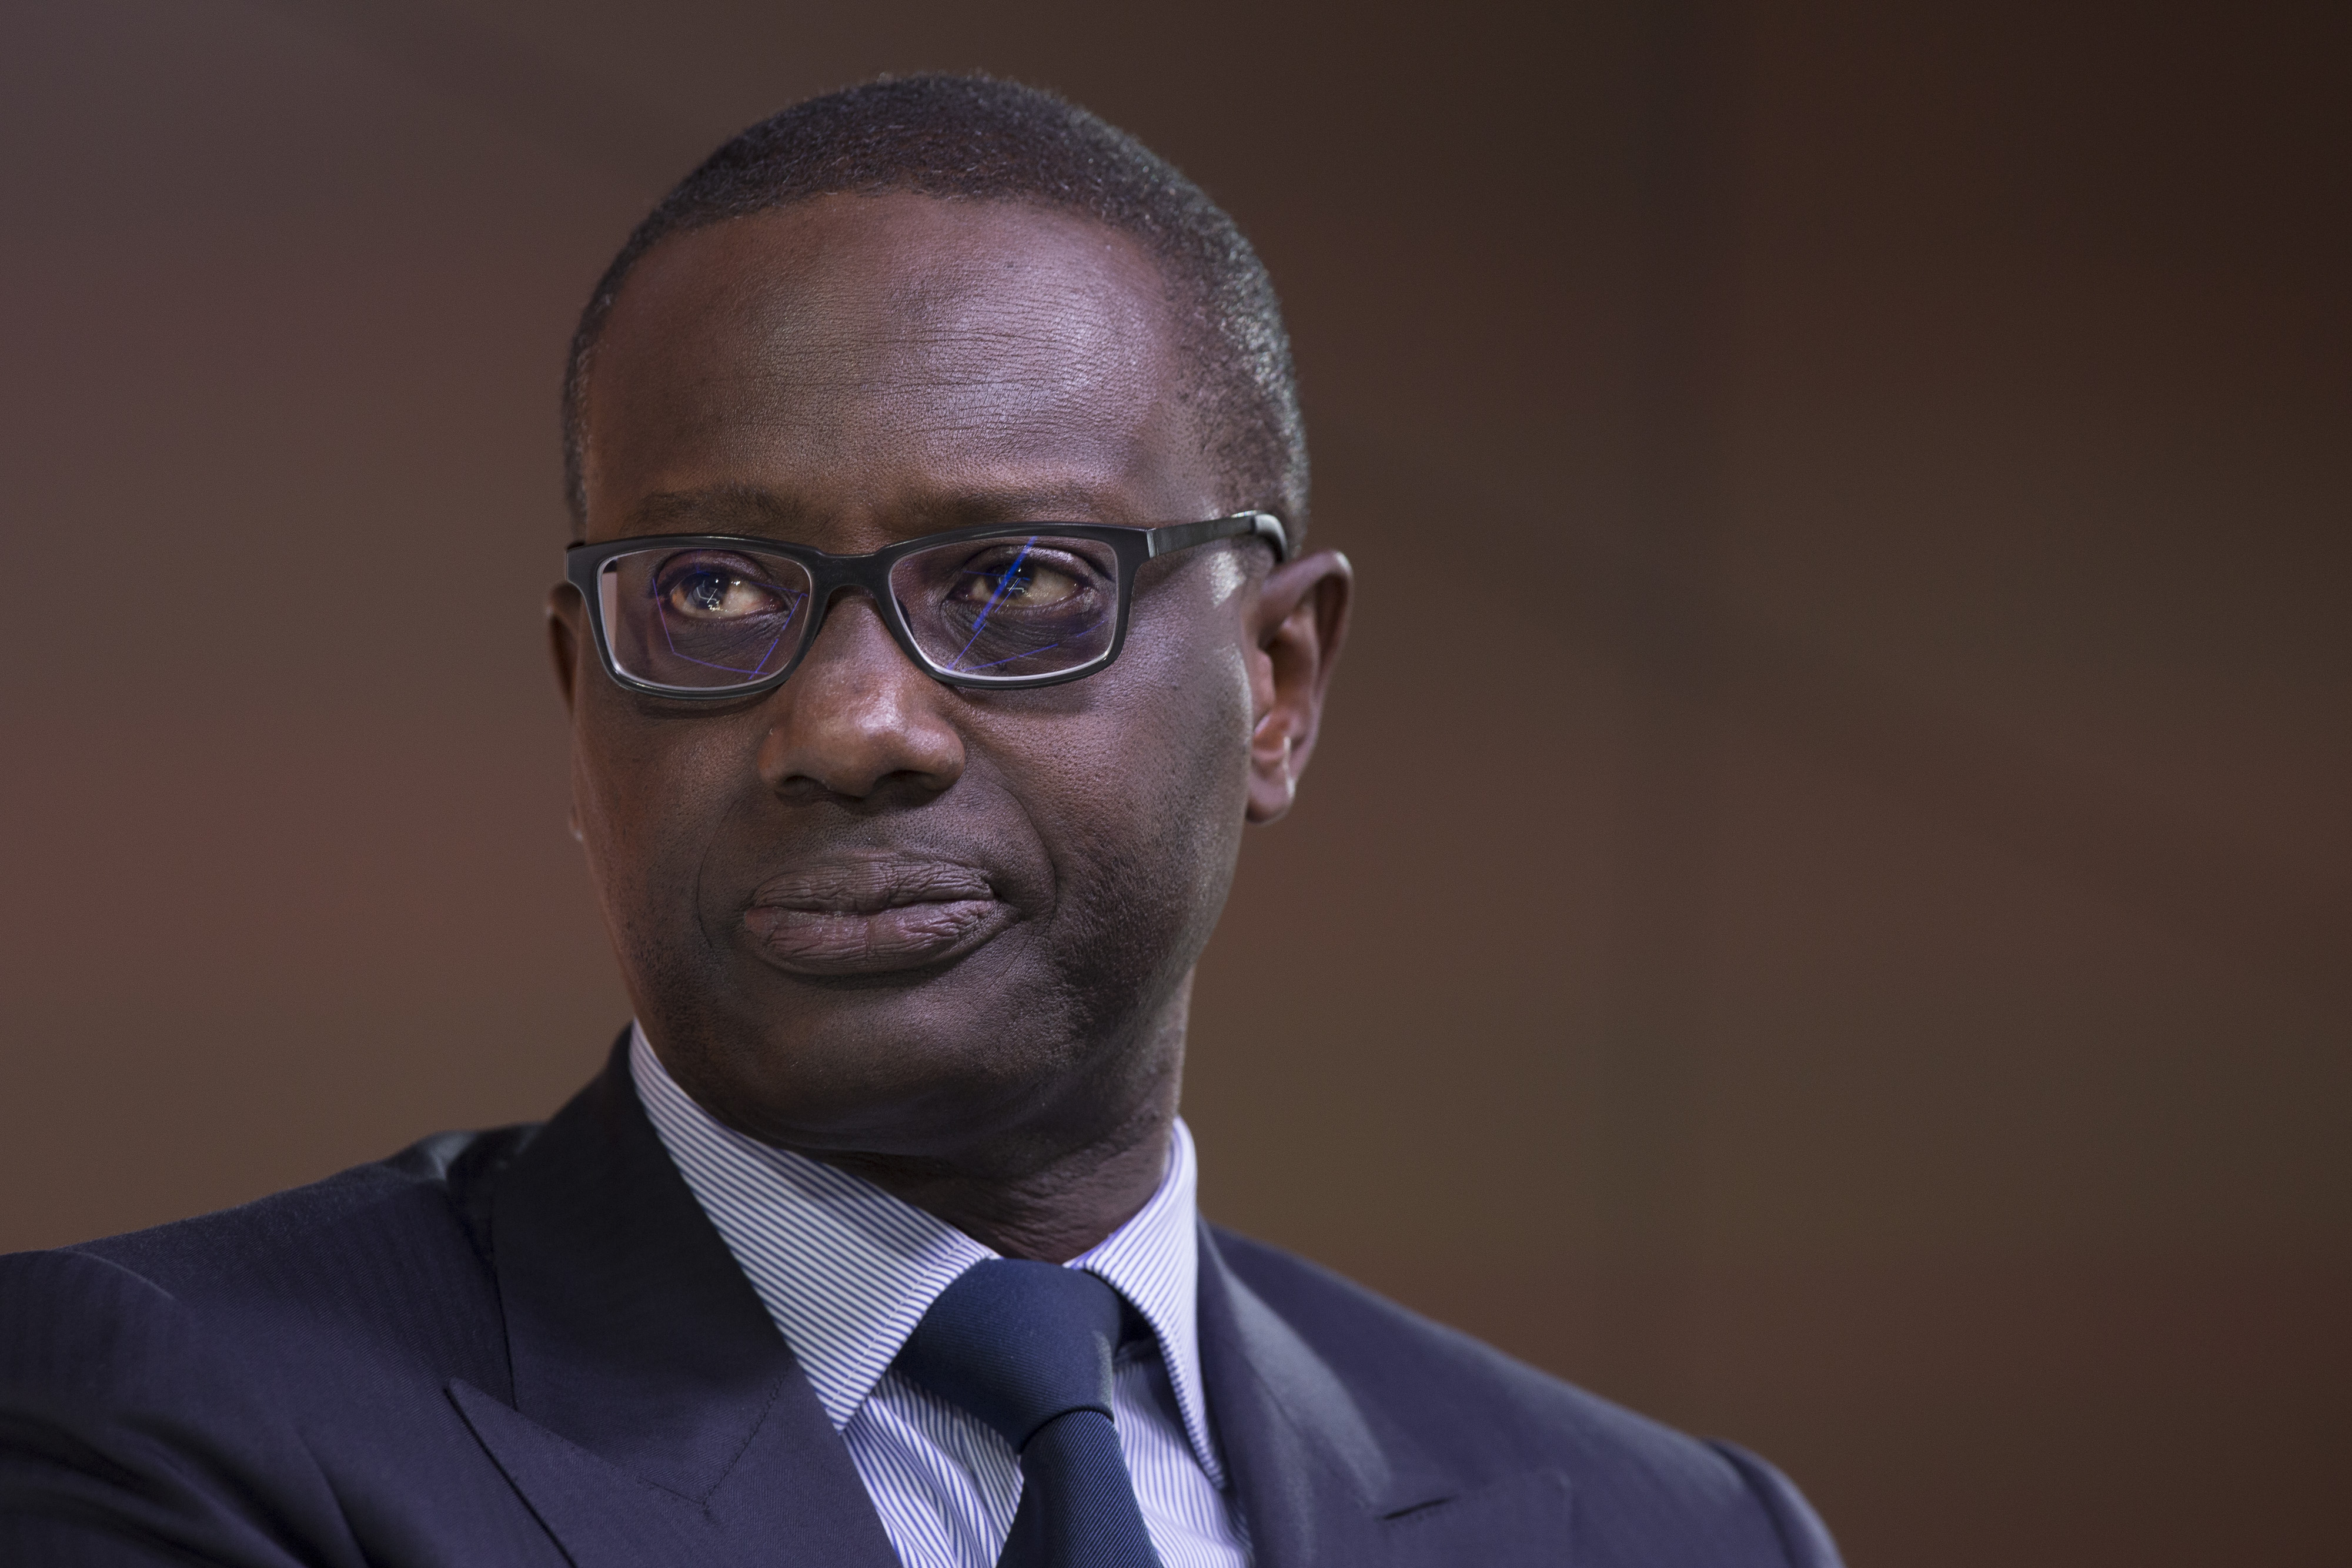 Tidjane Thiam, chief executive officer of Credit Suisse Group AG, speaks at the Bloomberg Markets Most Influential Summit in London, U.K., on Wednesday, Sept. 28, 2016.